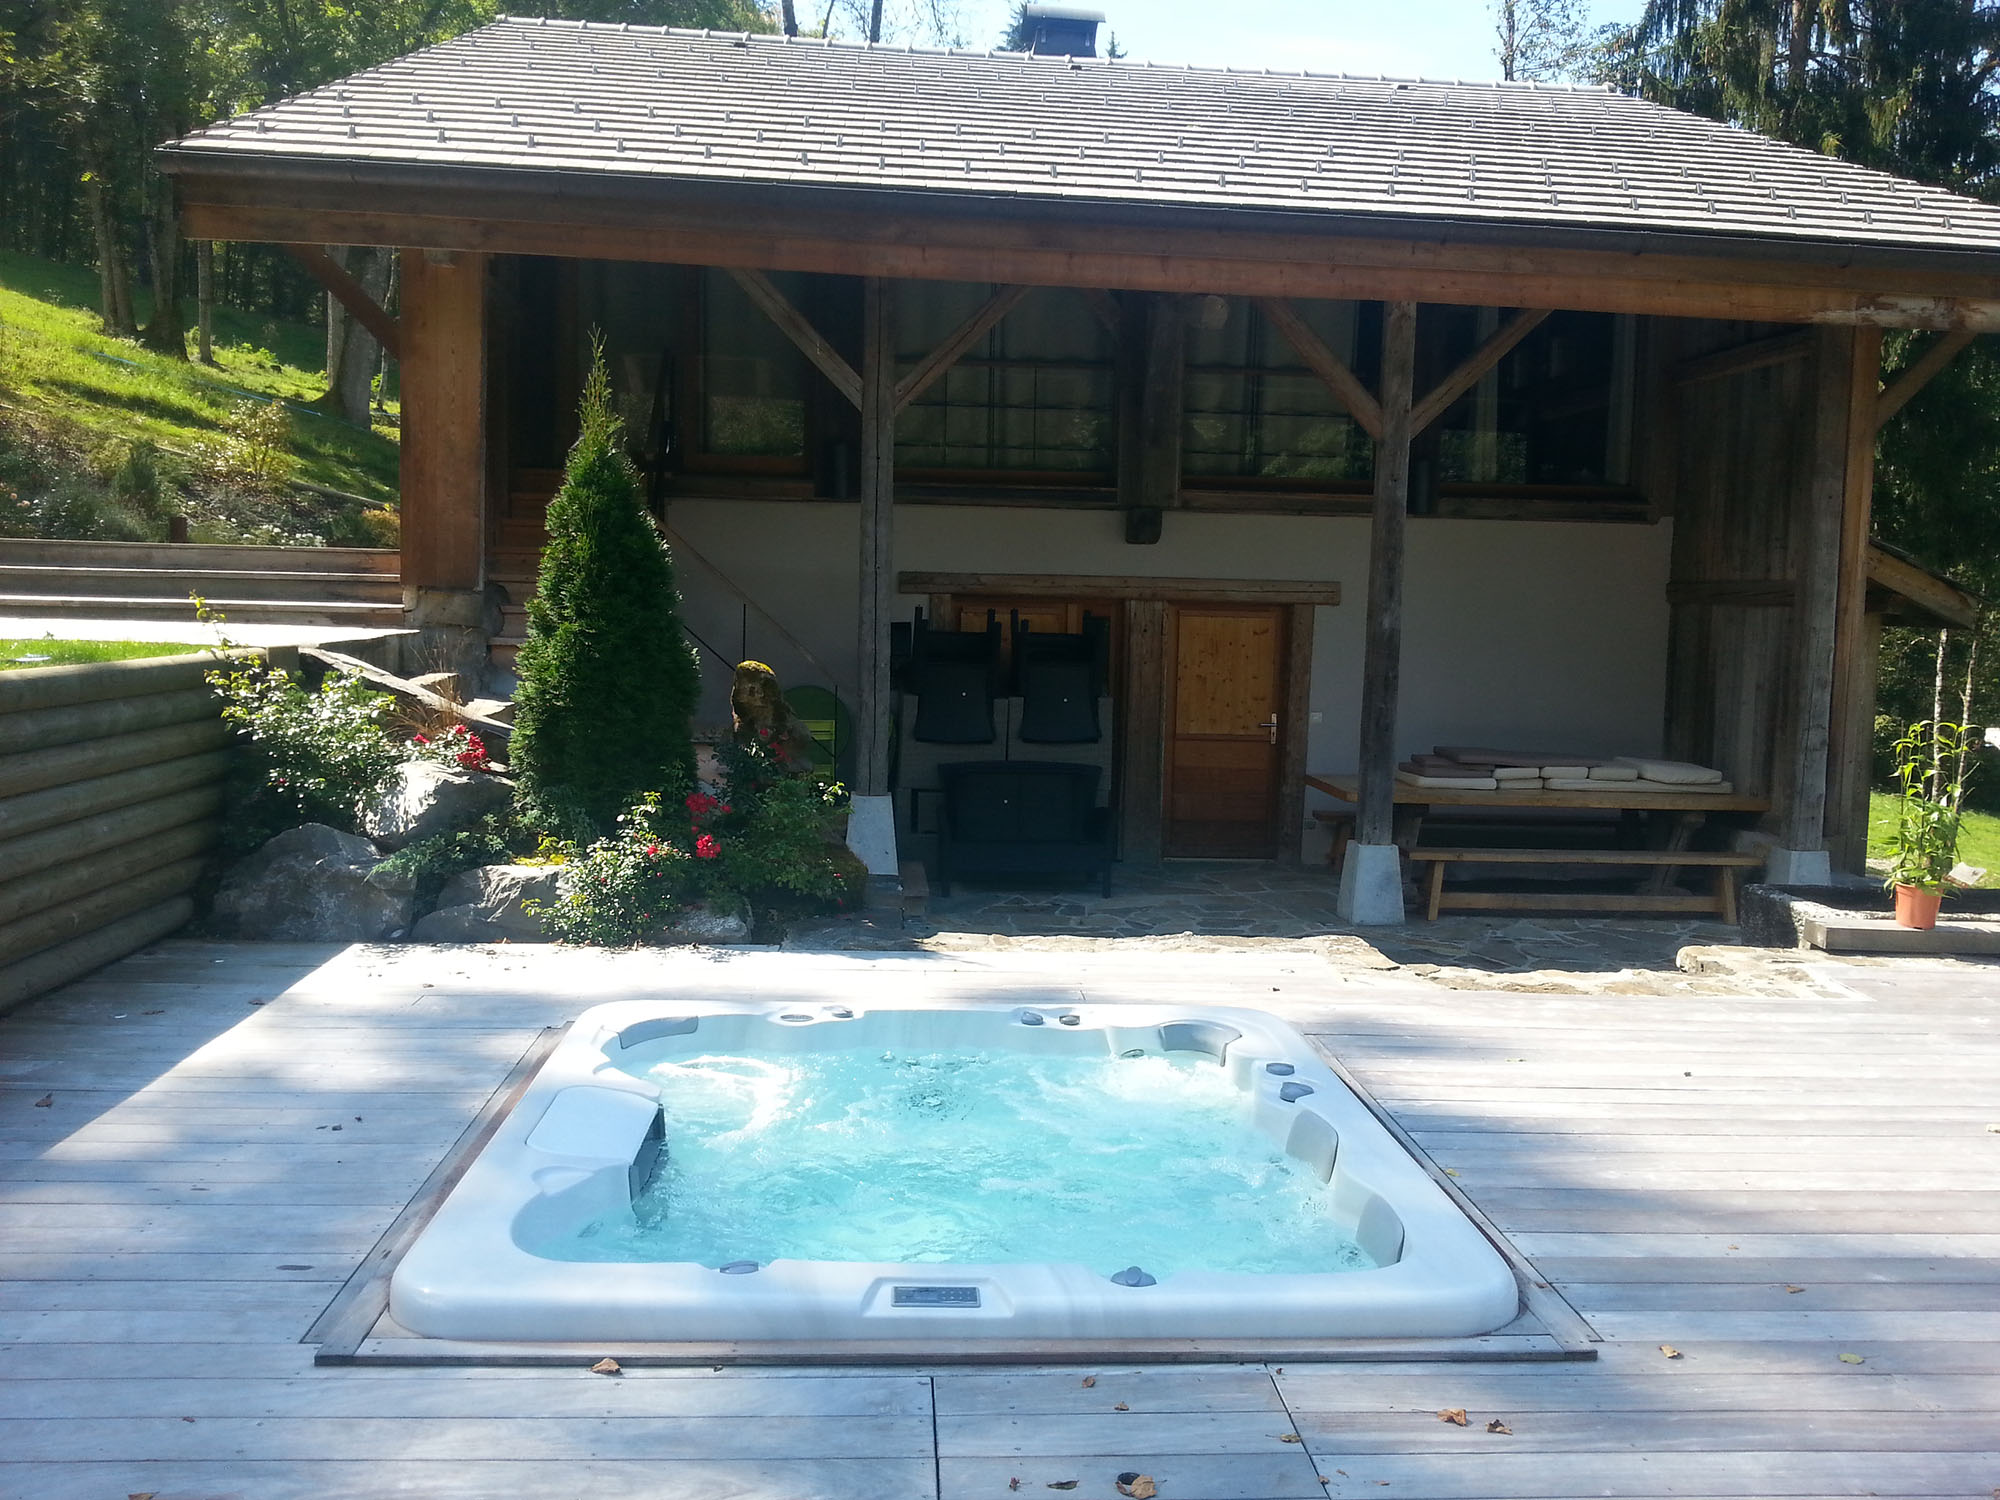 Vente spa de nage annecy vente de spas annecy aquaphil for Piscine spa annecy